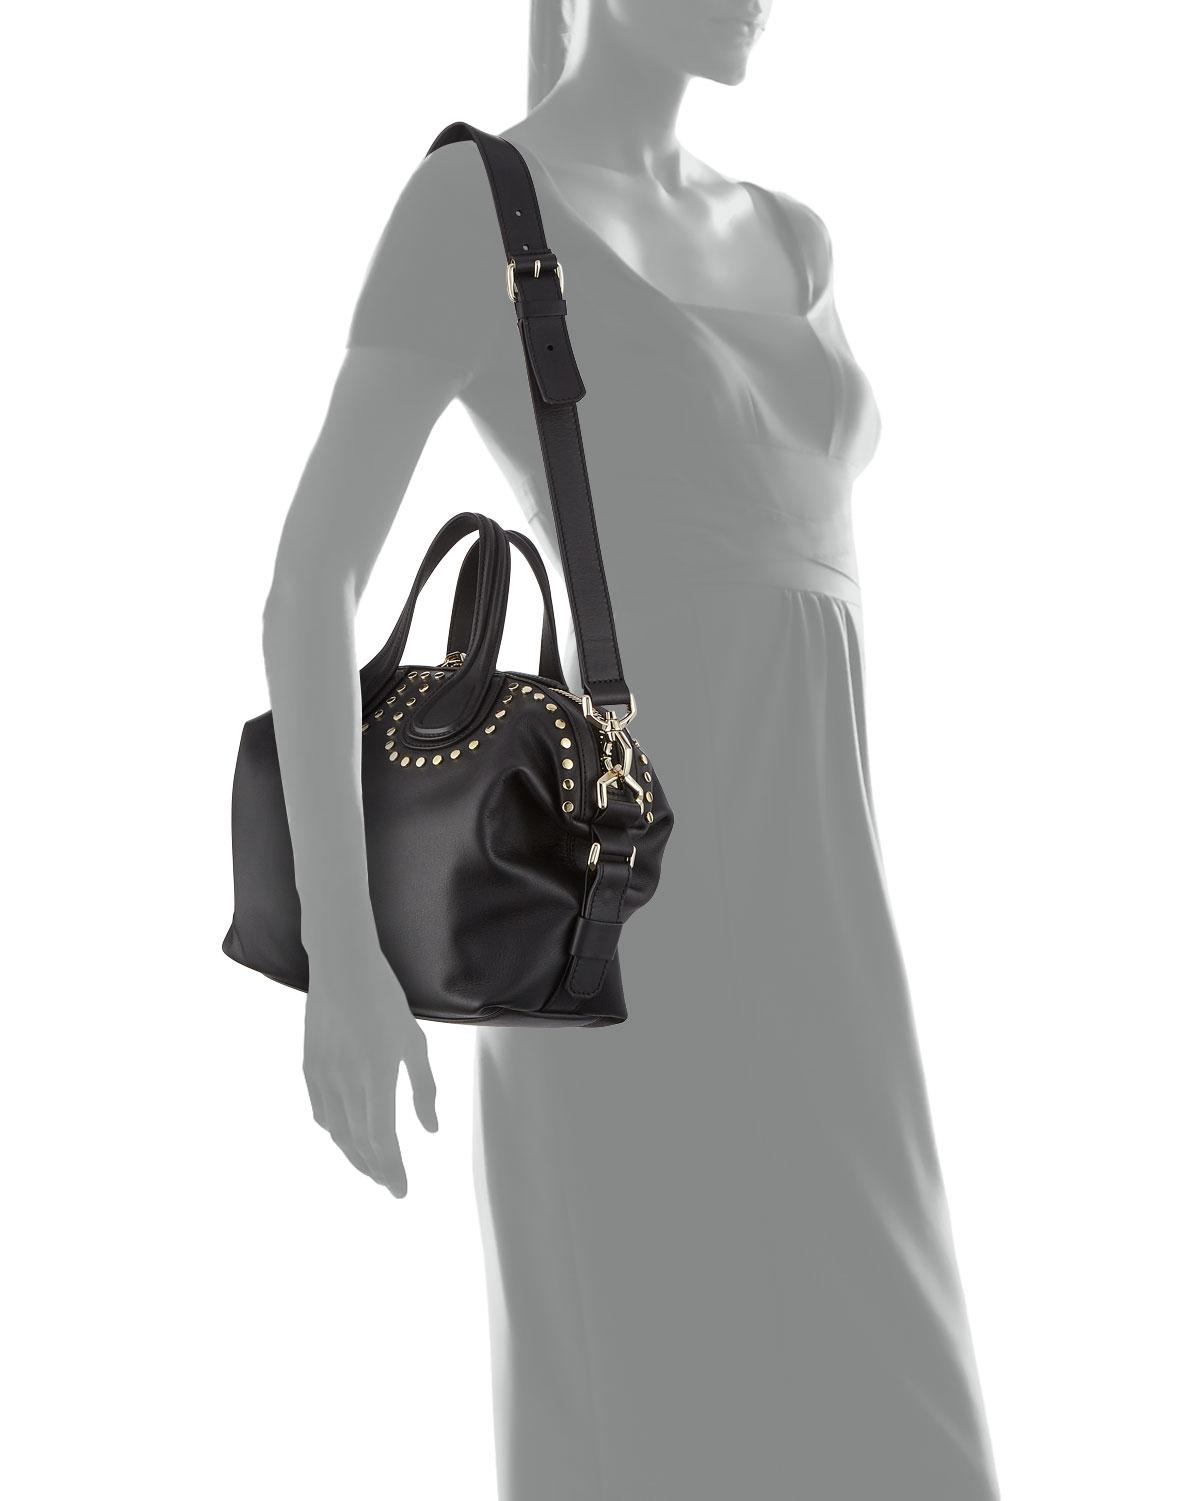 7dcd14fe7cd8 Lyst - Givenchy Nightingale Small Studded Satchel Bag in Black